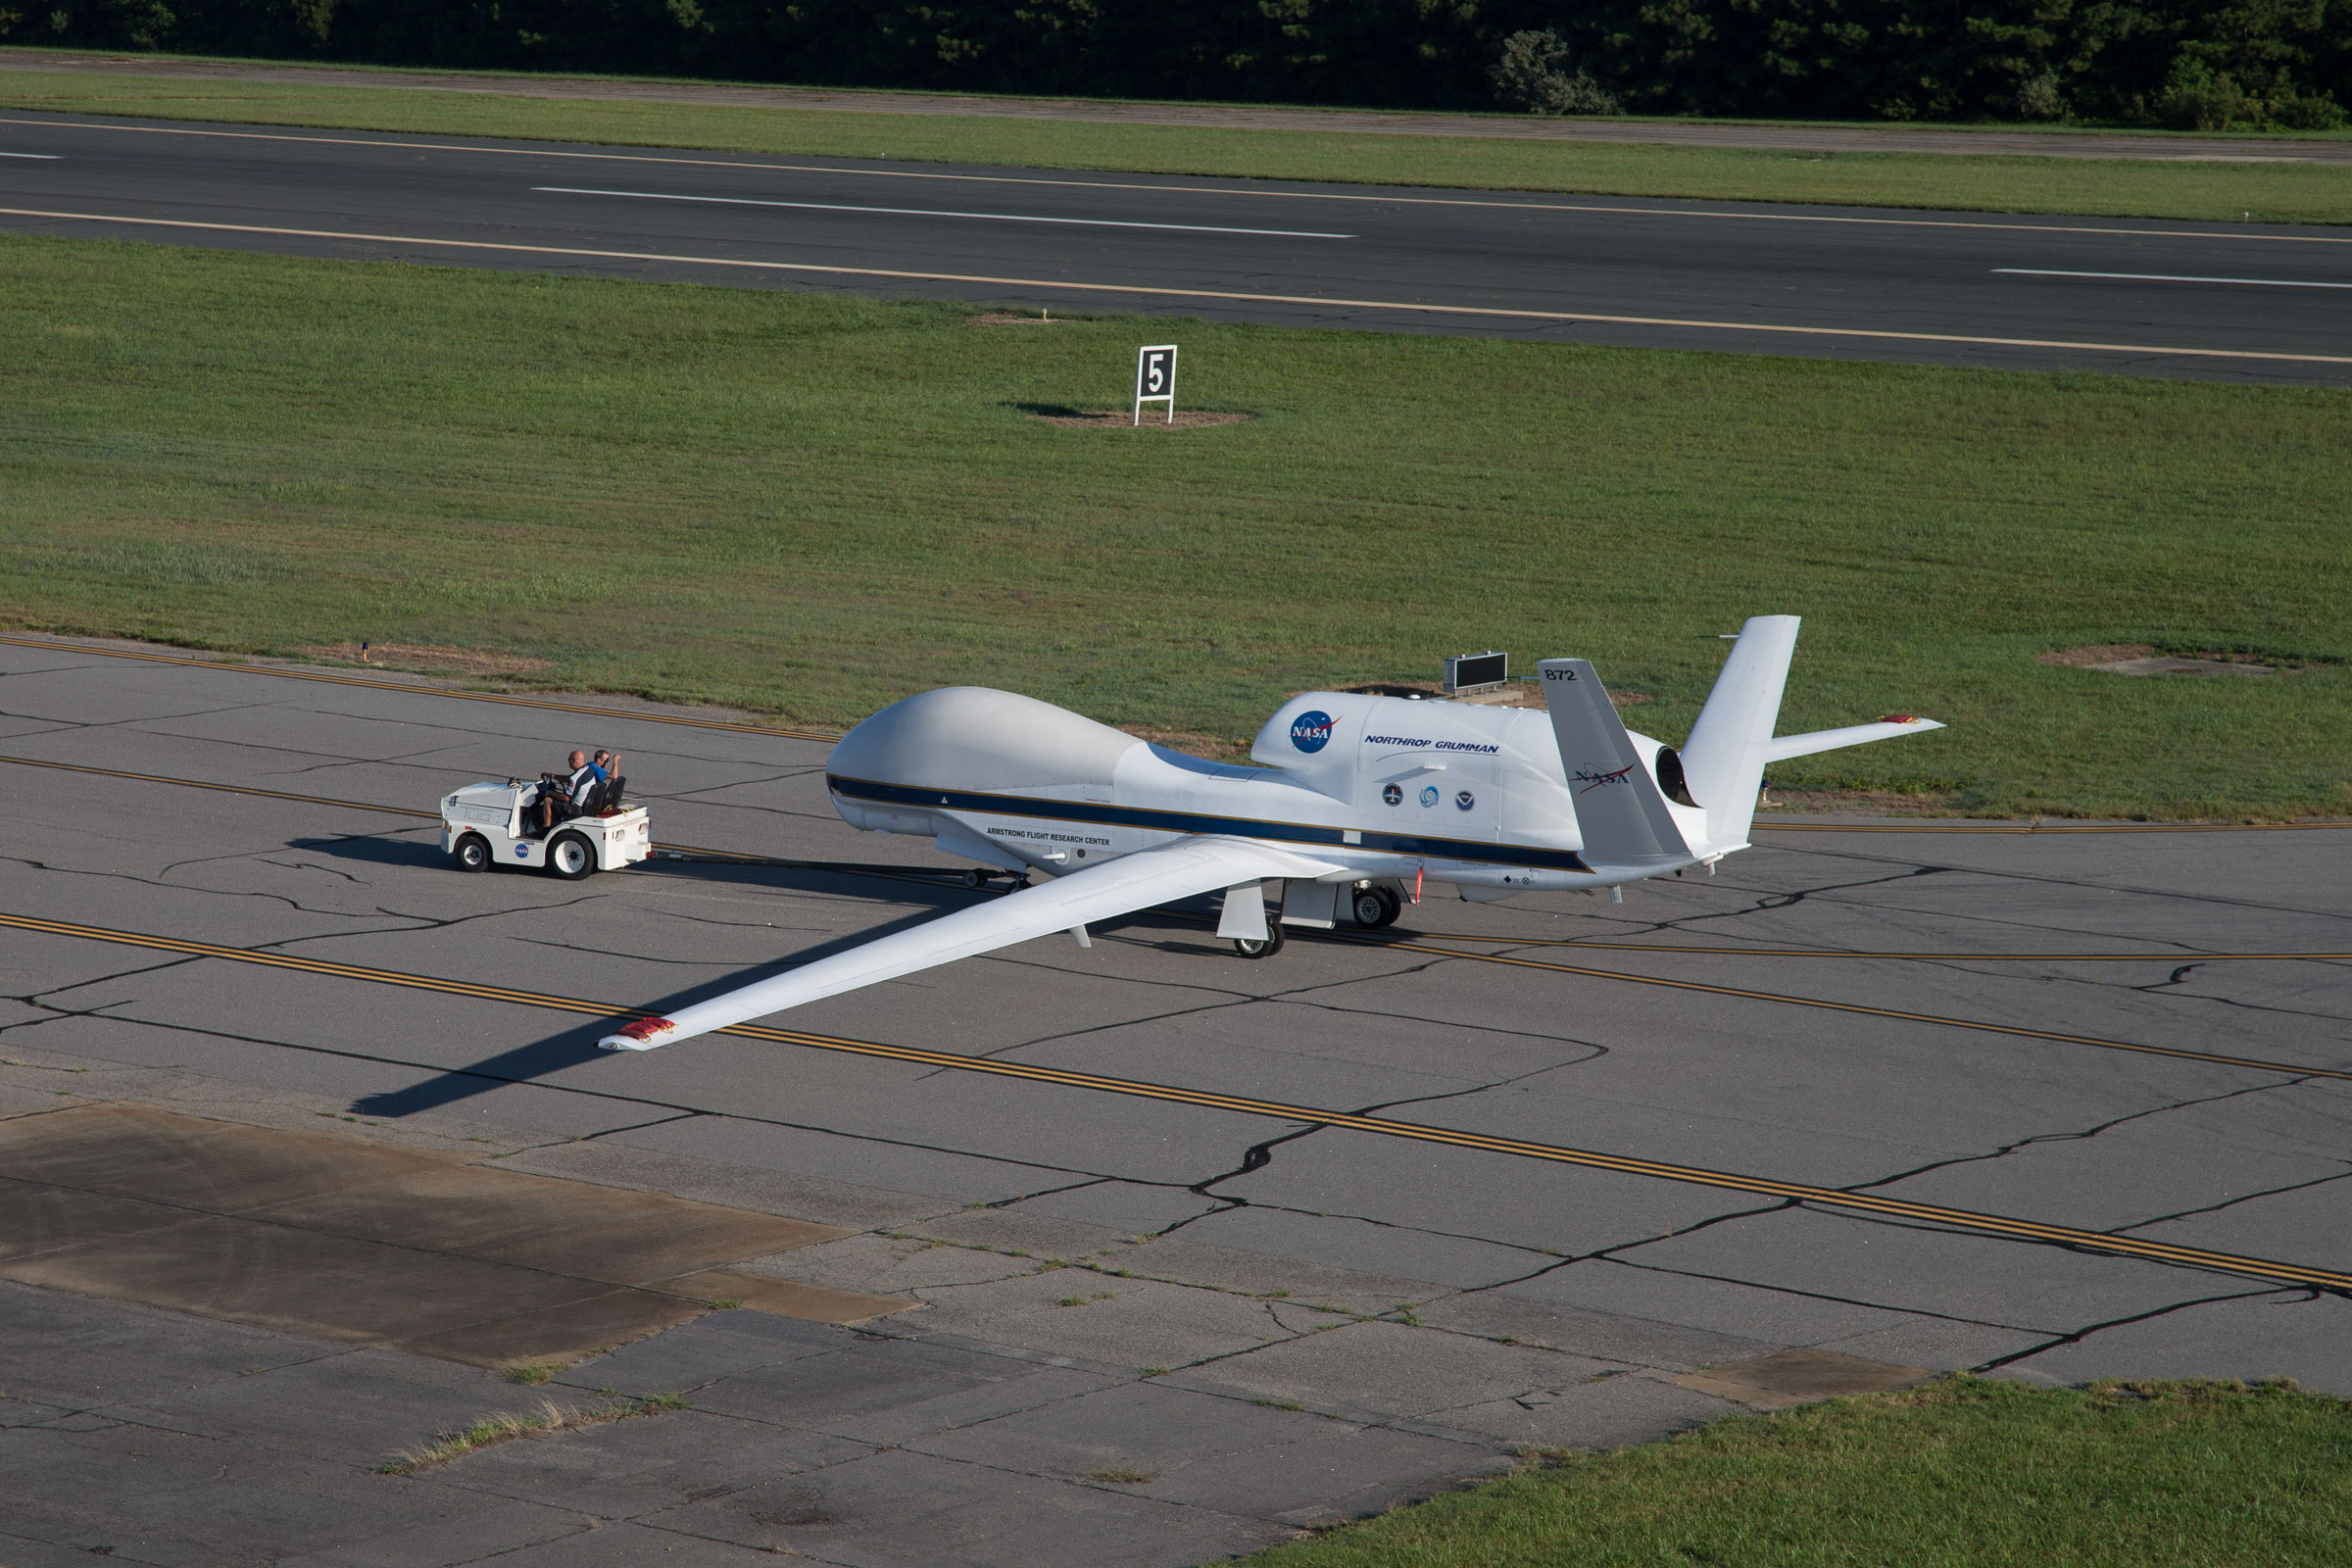 File:NASA 872 Global Hawk taxis at Wallops Flight Facility.jpg